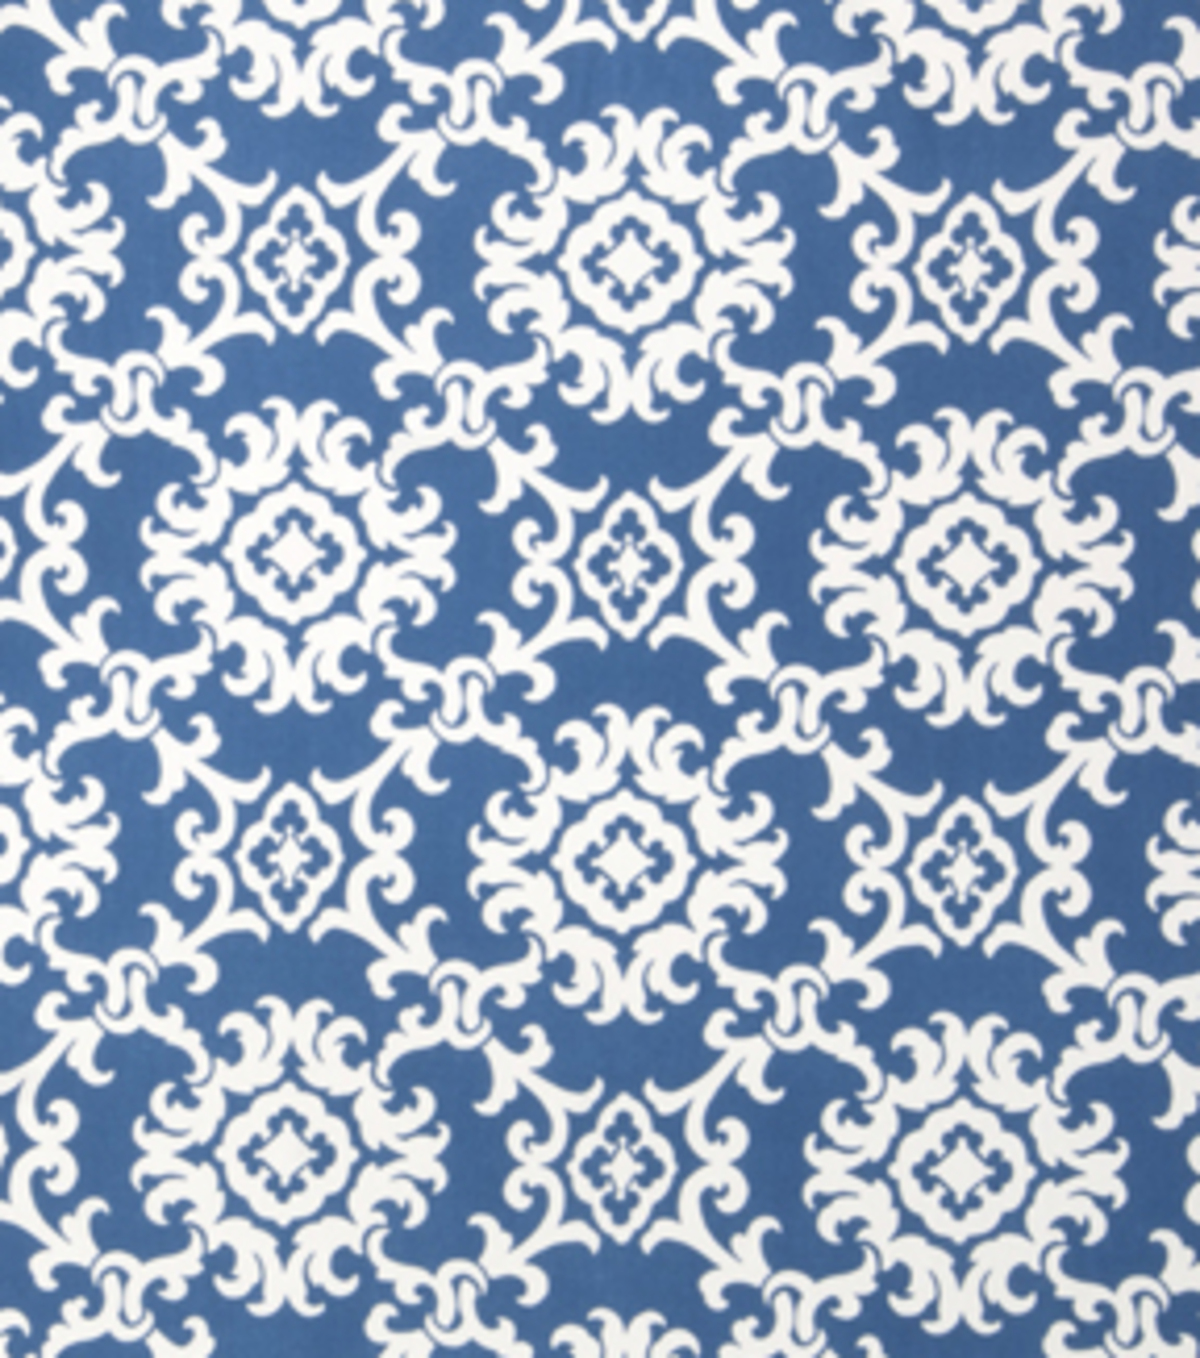 Smc Designs Upholstery Fabric 02502 Nautical